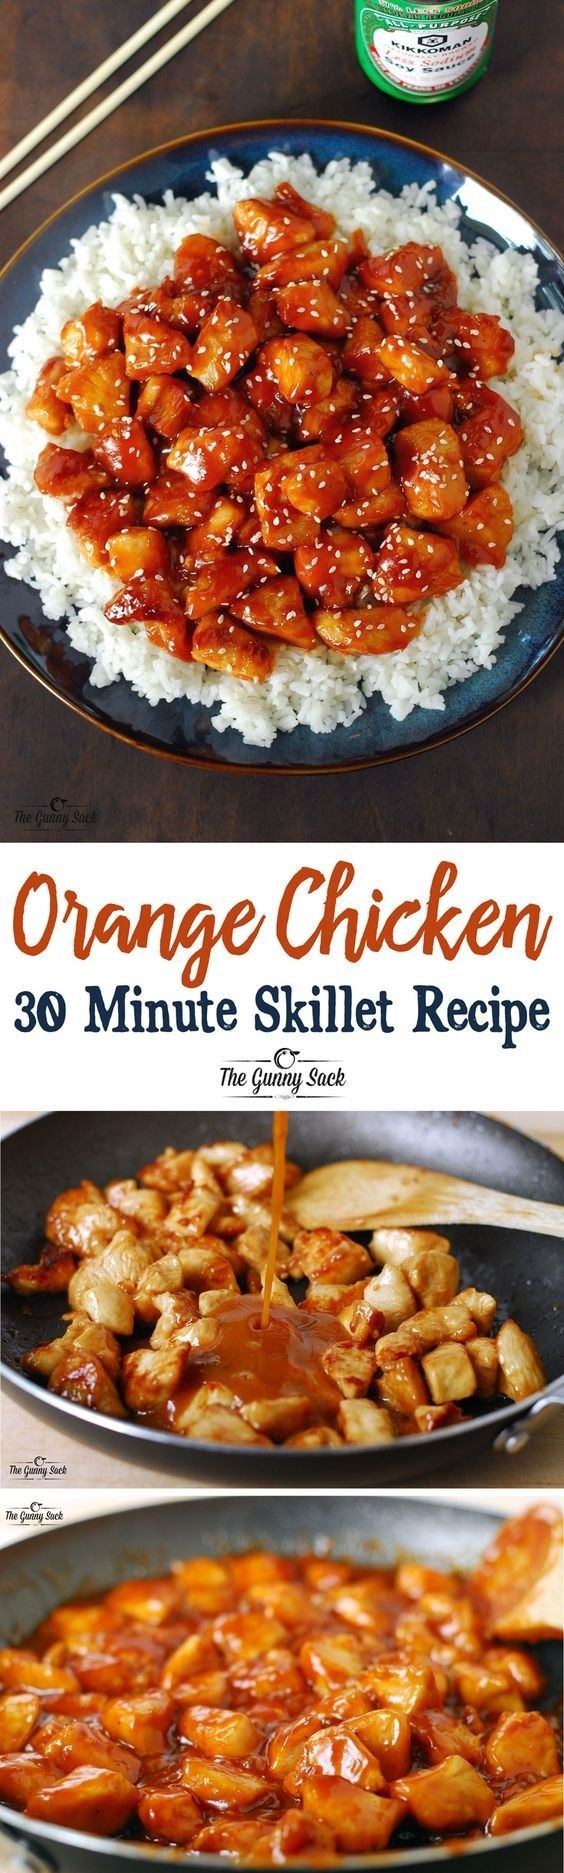 Orange Chicken and Rice   7 Tasty Dinner Recipes You'll Want To Bookmark